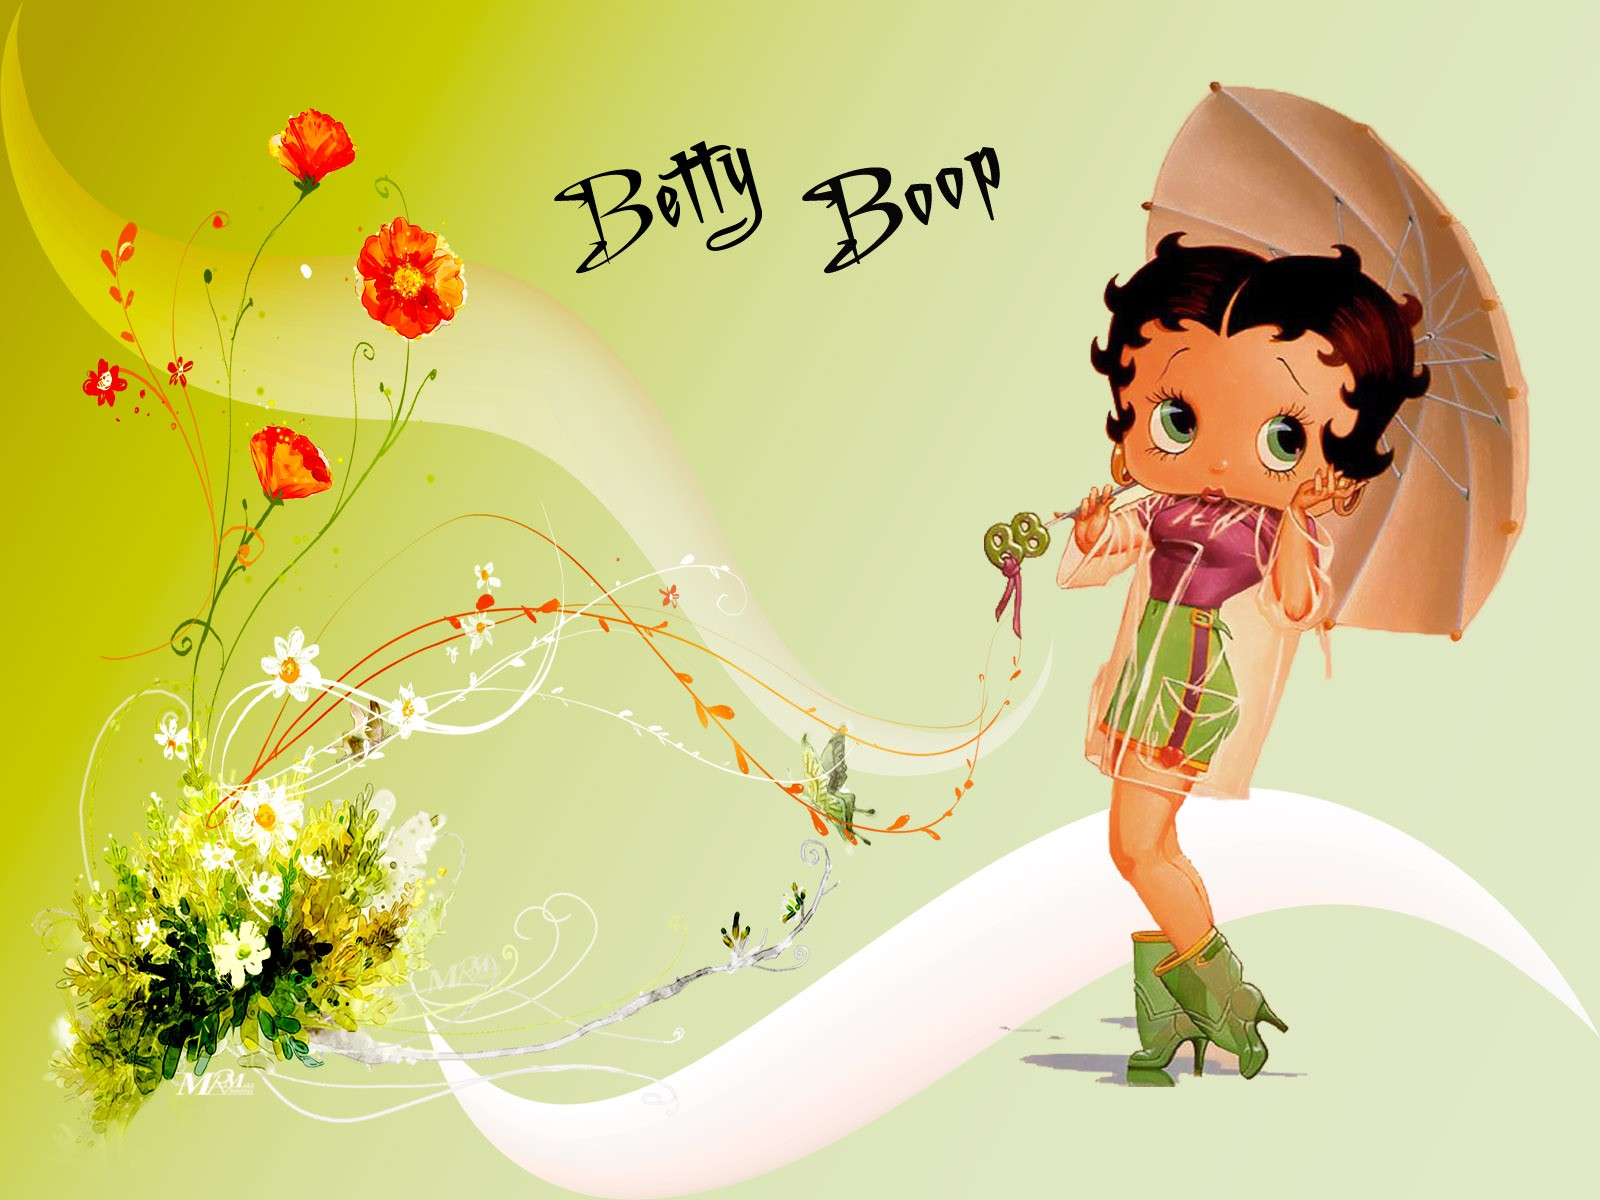 http://1.bp.blogspot.com/-LDdAlmxKS6o/UD5Qyz2L9WI/AAAAAAAAL4I/QzmM01qQFp4/s1600/Betty+Boop+wallpaper+Kids+By+mrm.jpg